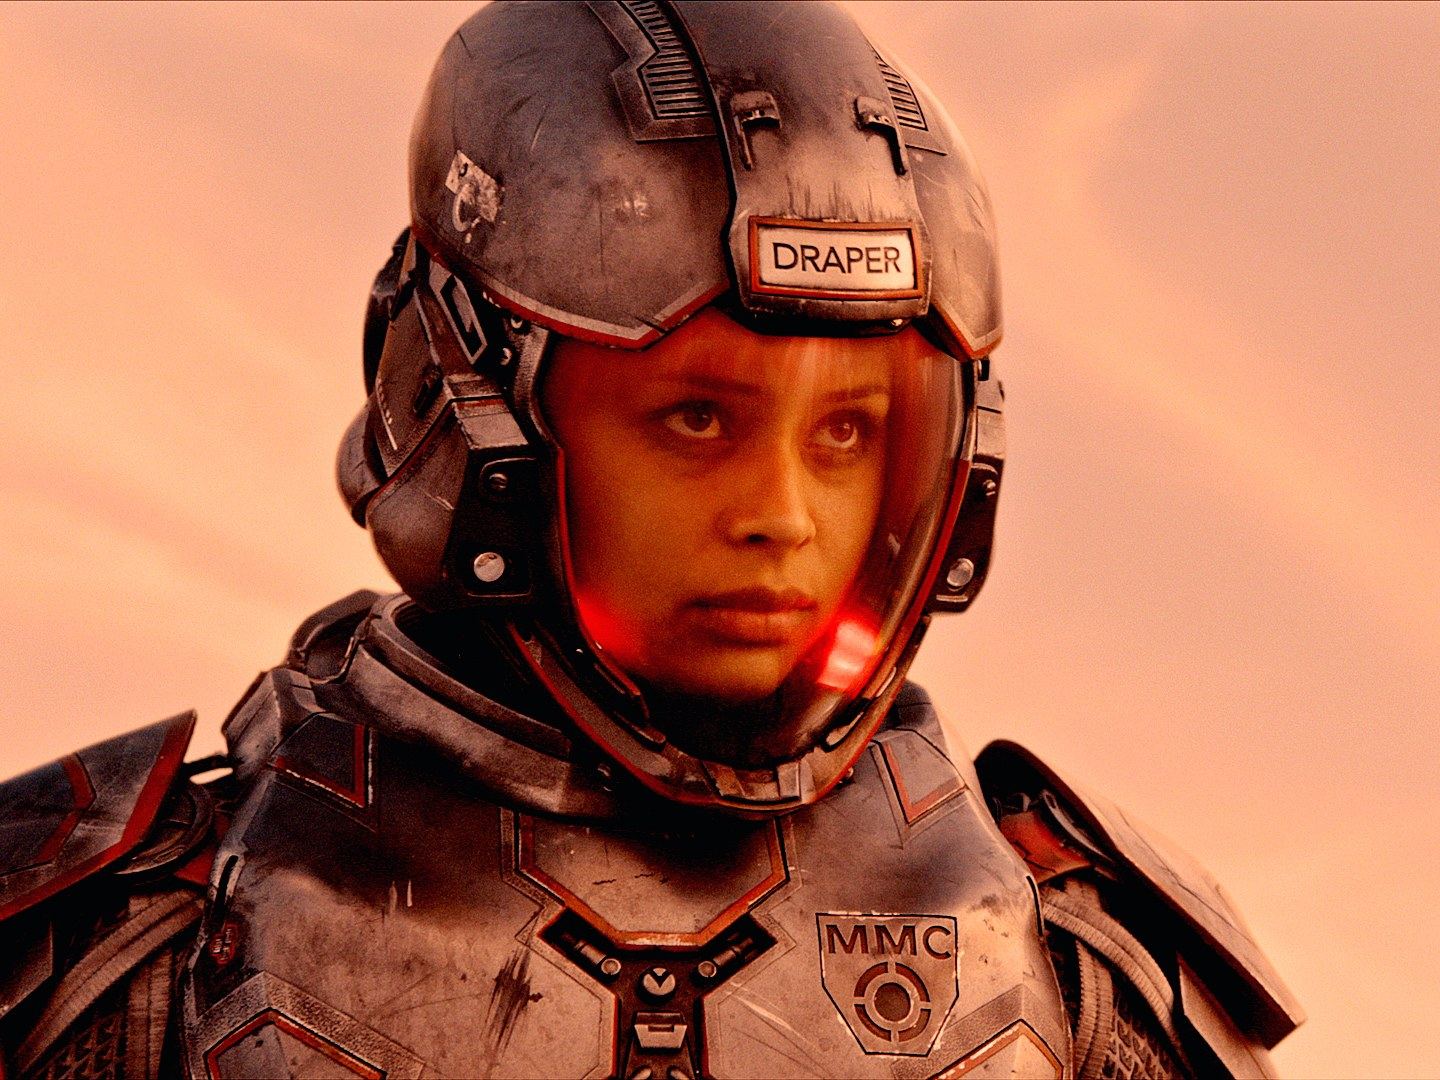 The Image shows the a woman in spacesuit, behind her is a slightly red sky